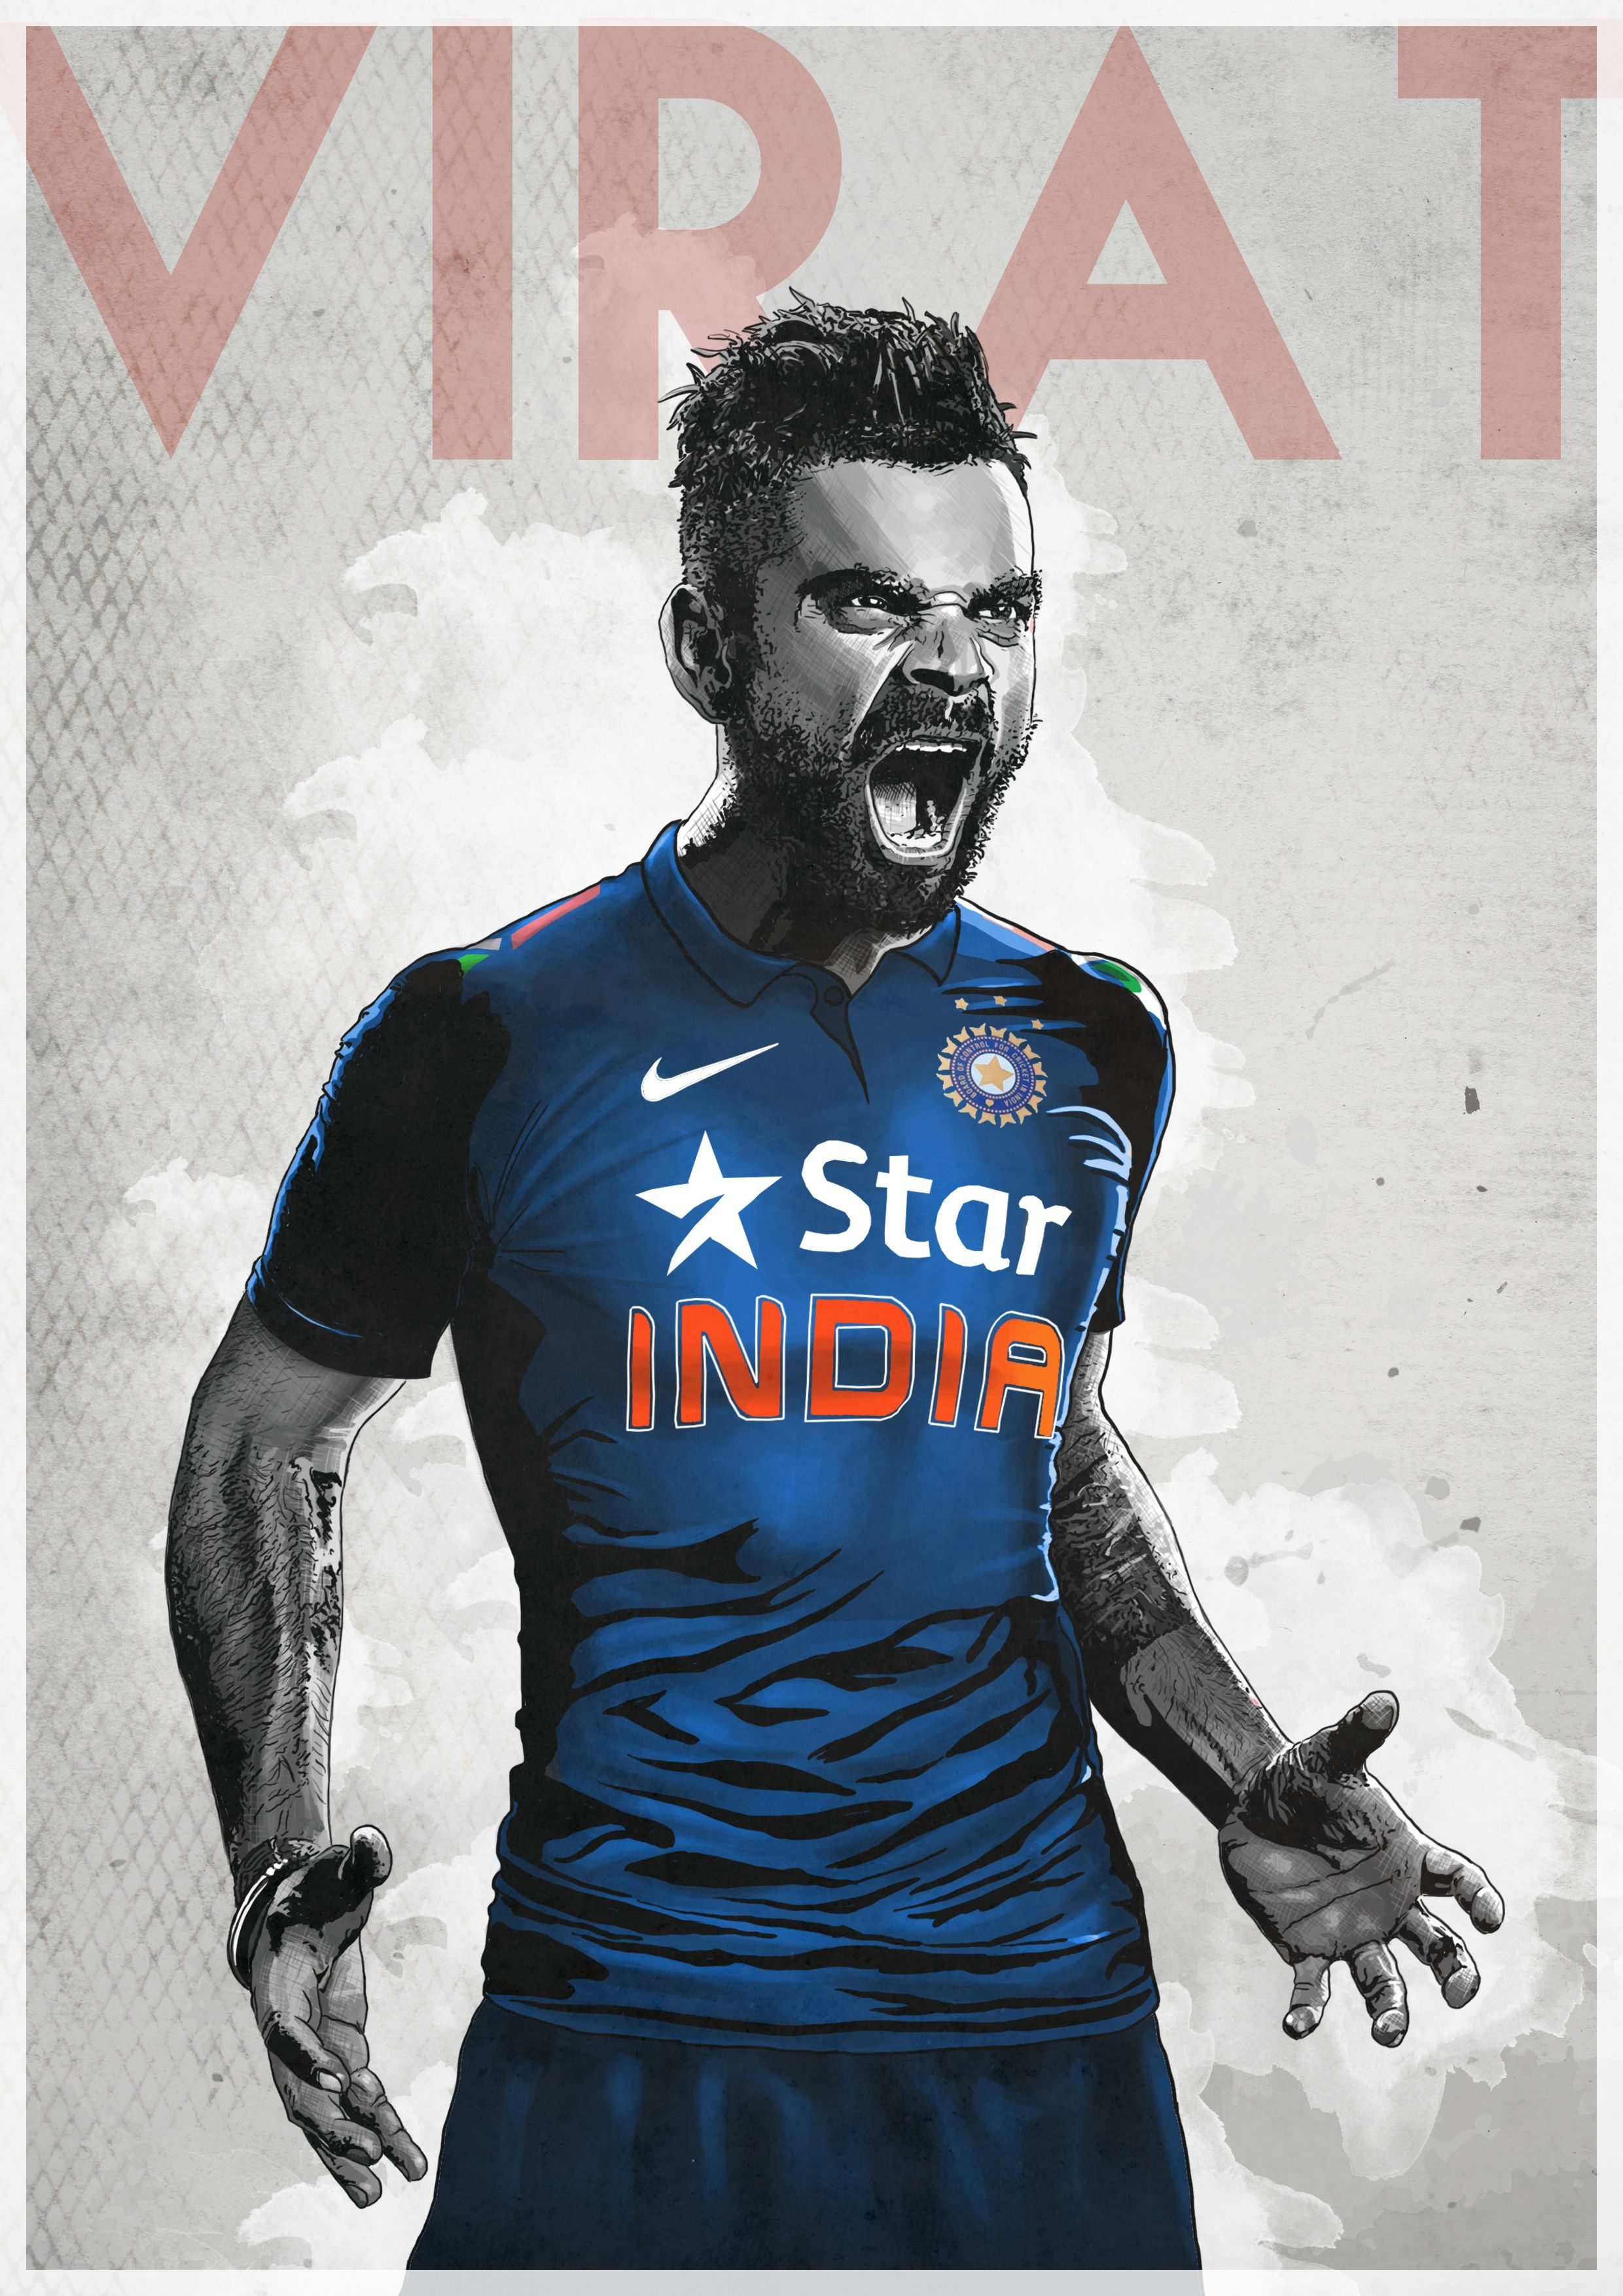 IPL 2020 Teams and Players List (With images) Virat